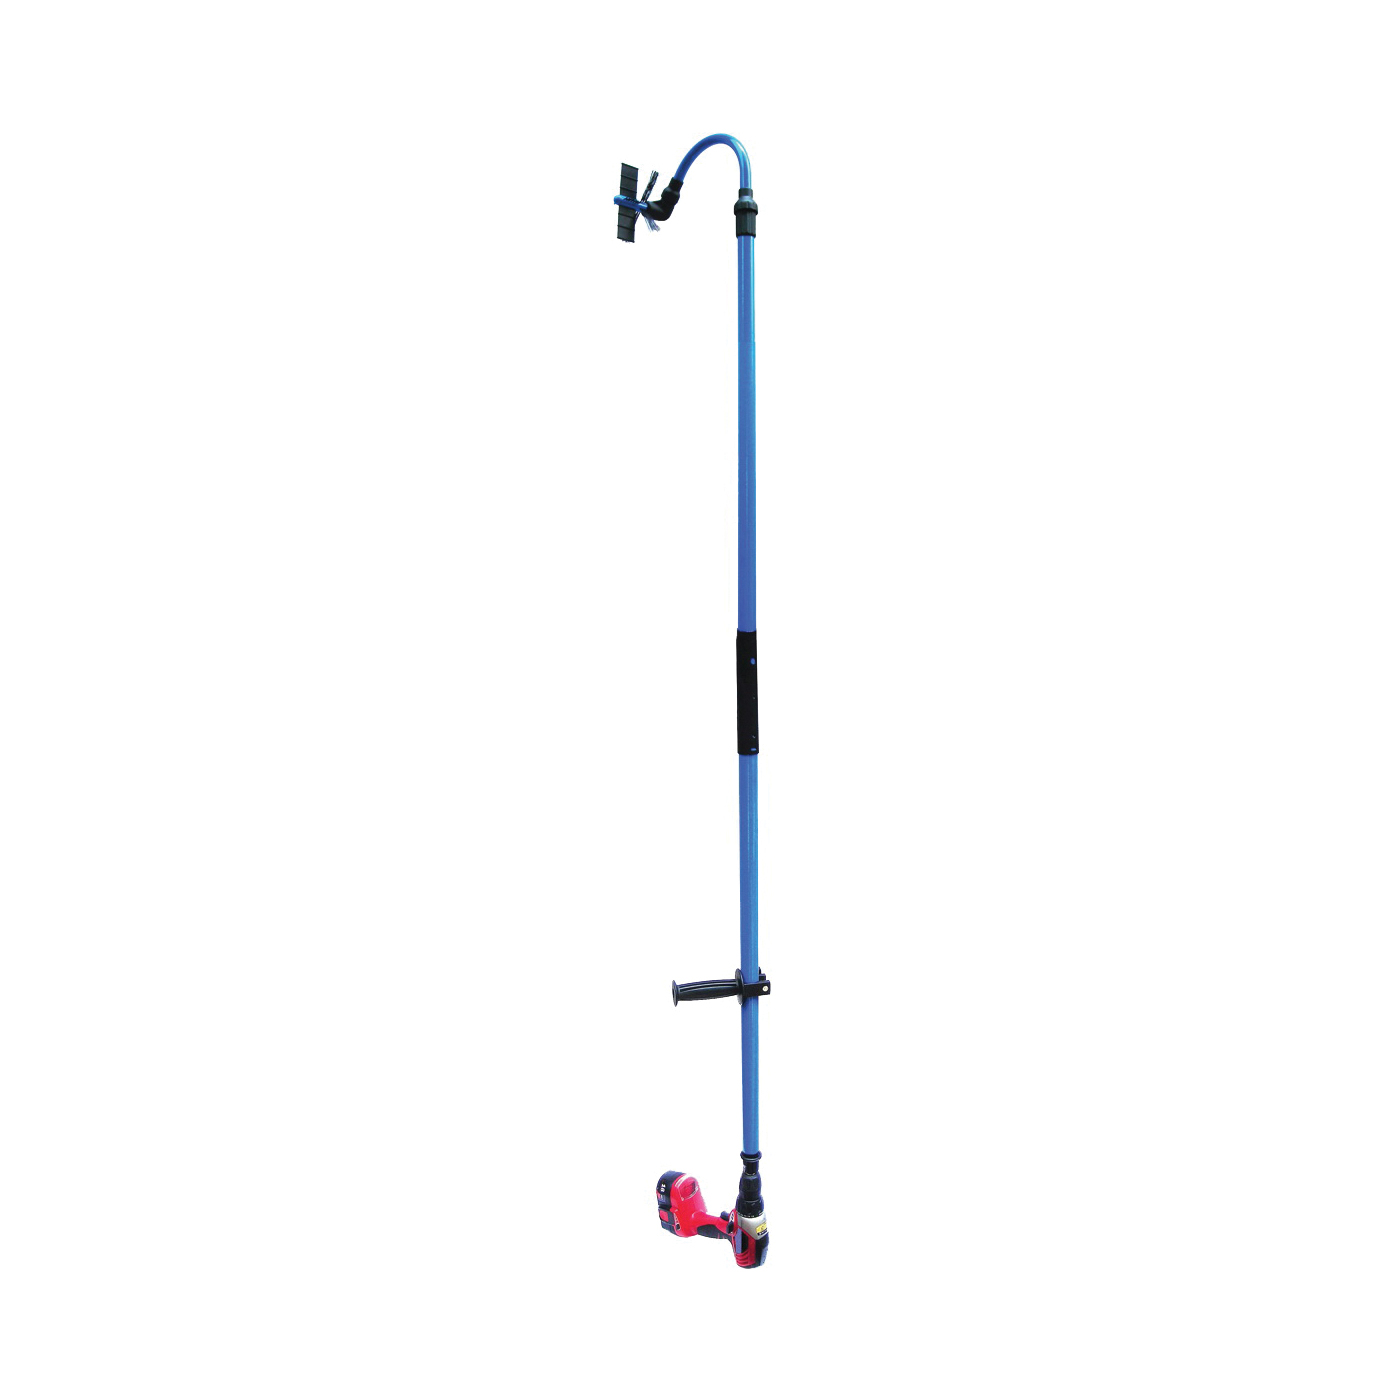 Picture of GutterSweep GS900 Gutter Cleaning Rotary System